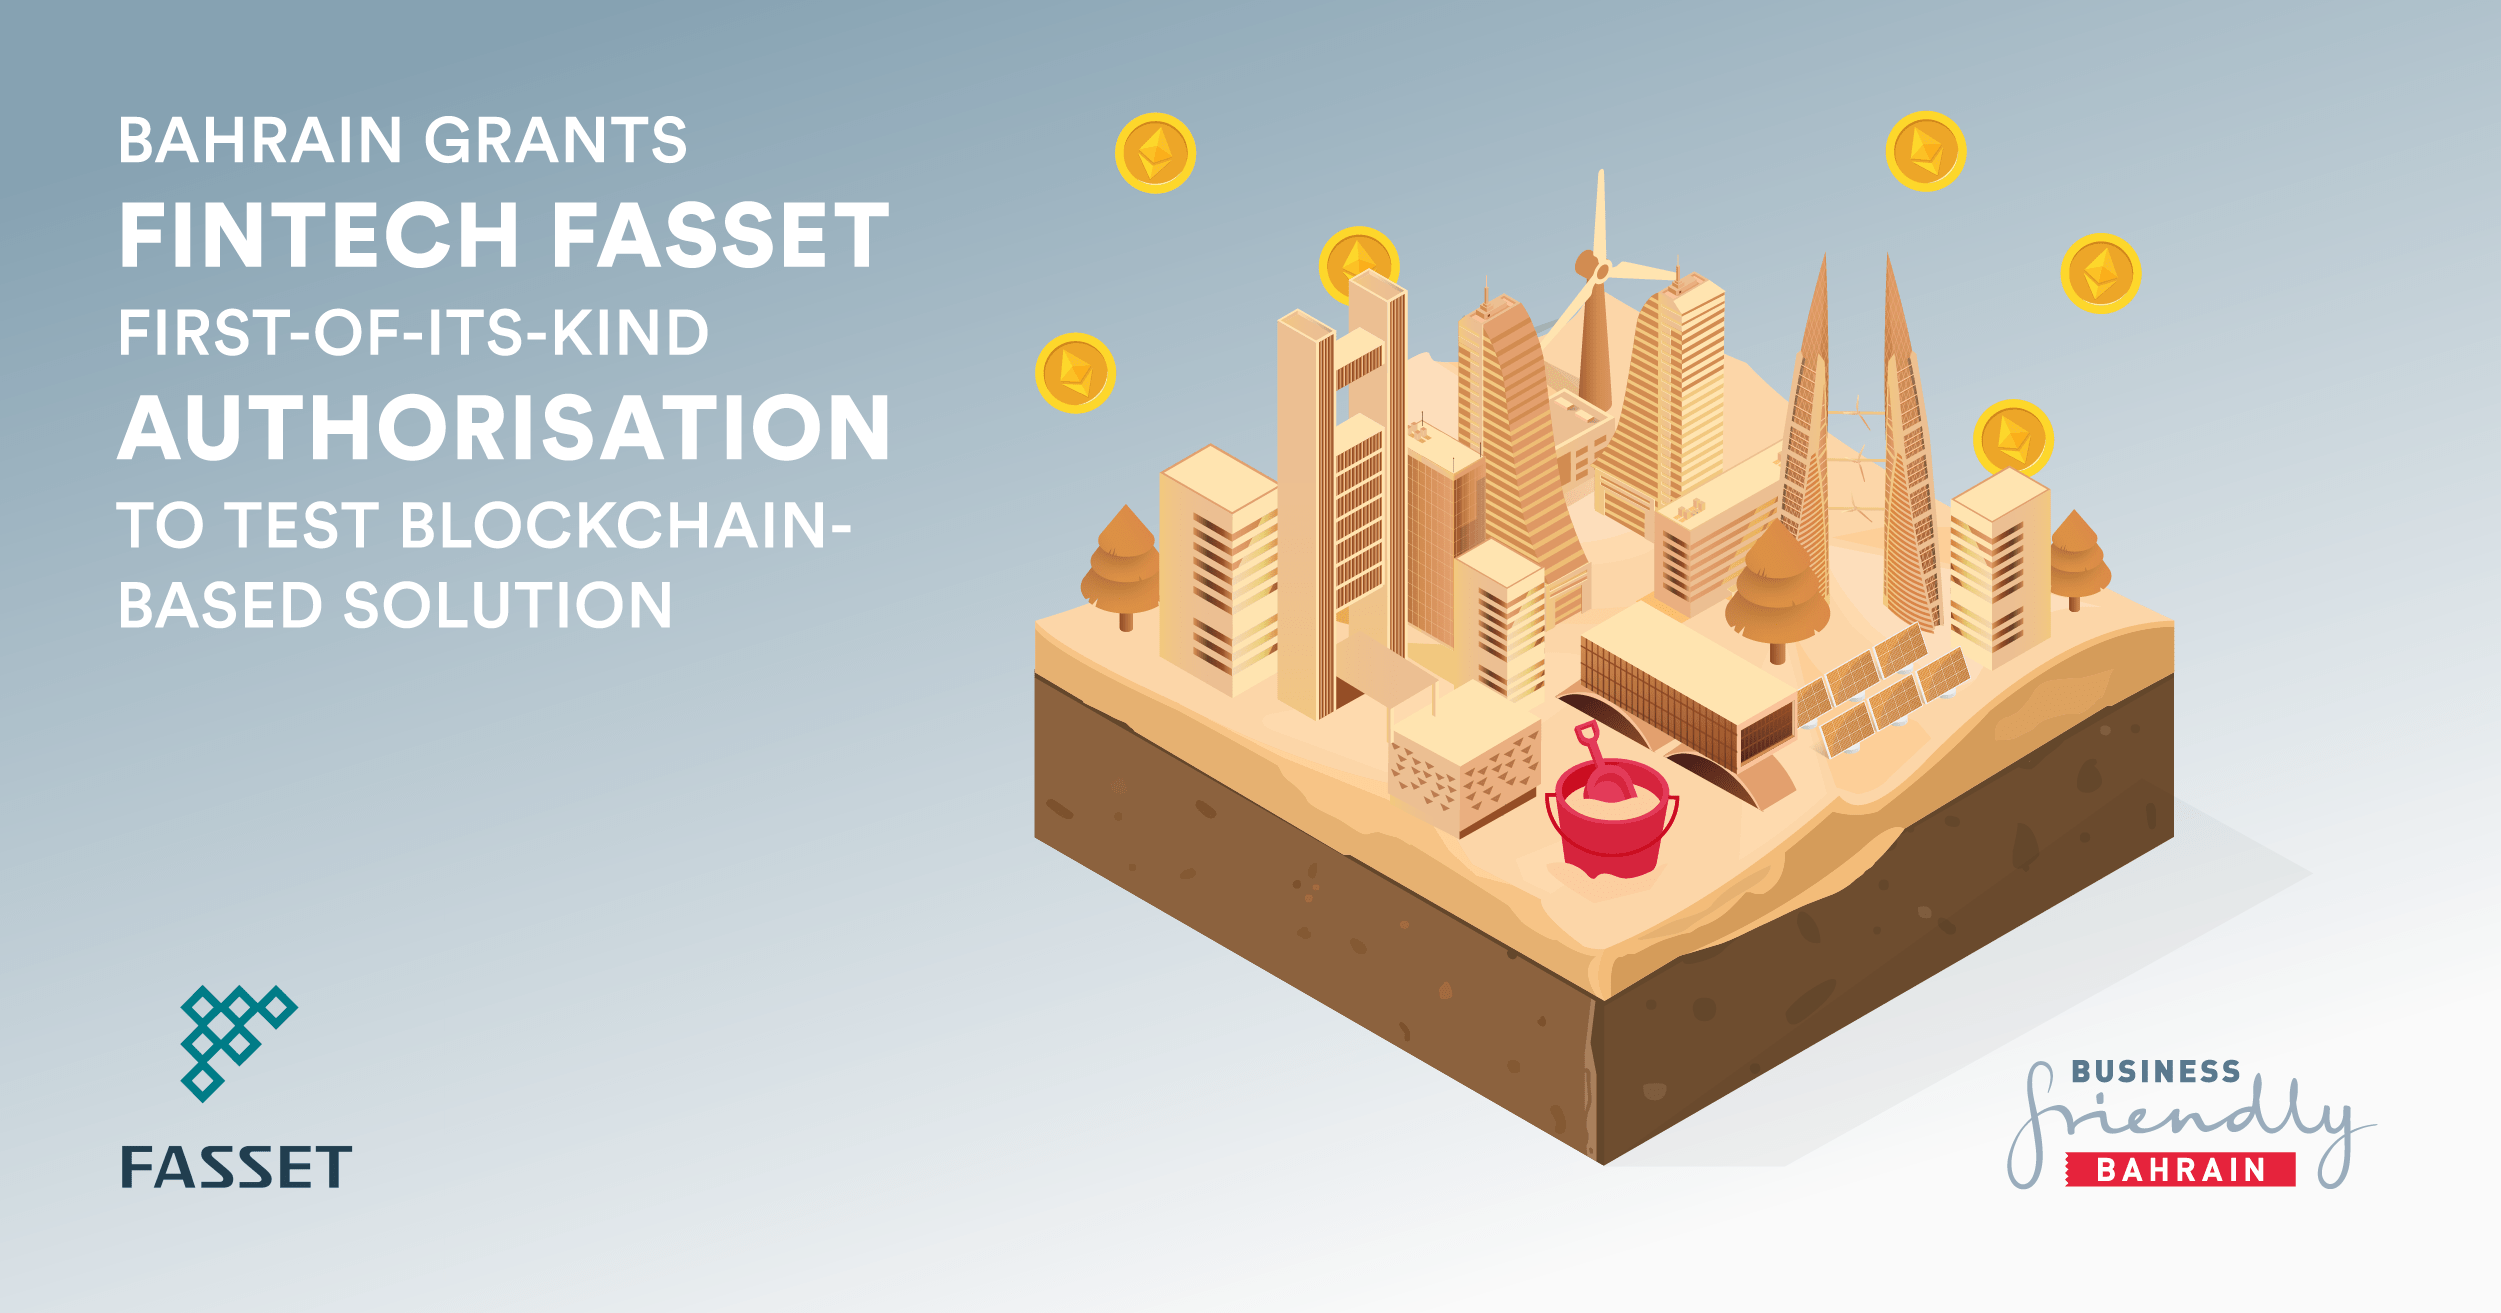 Bahrain grants UK FinTech Fasset first-of-its-kind authorisation to test blockchain-based solution for addressing US$ 15 trillion sustainable infrastructure funding gap